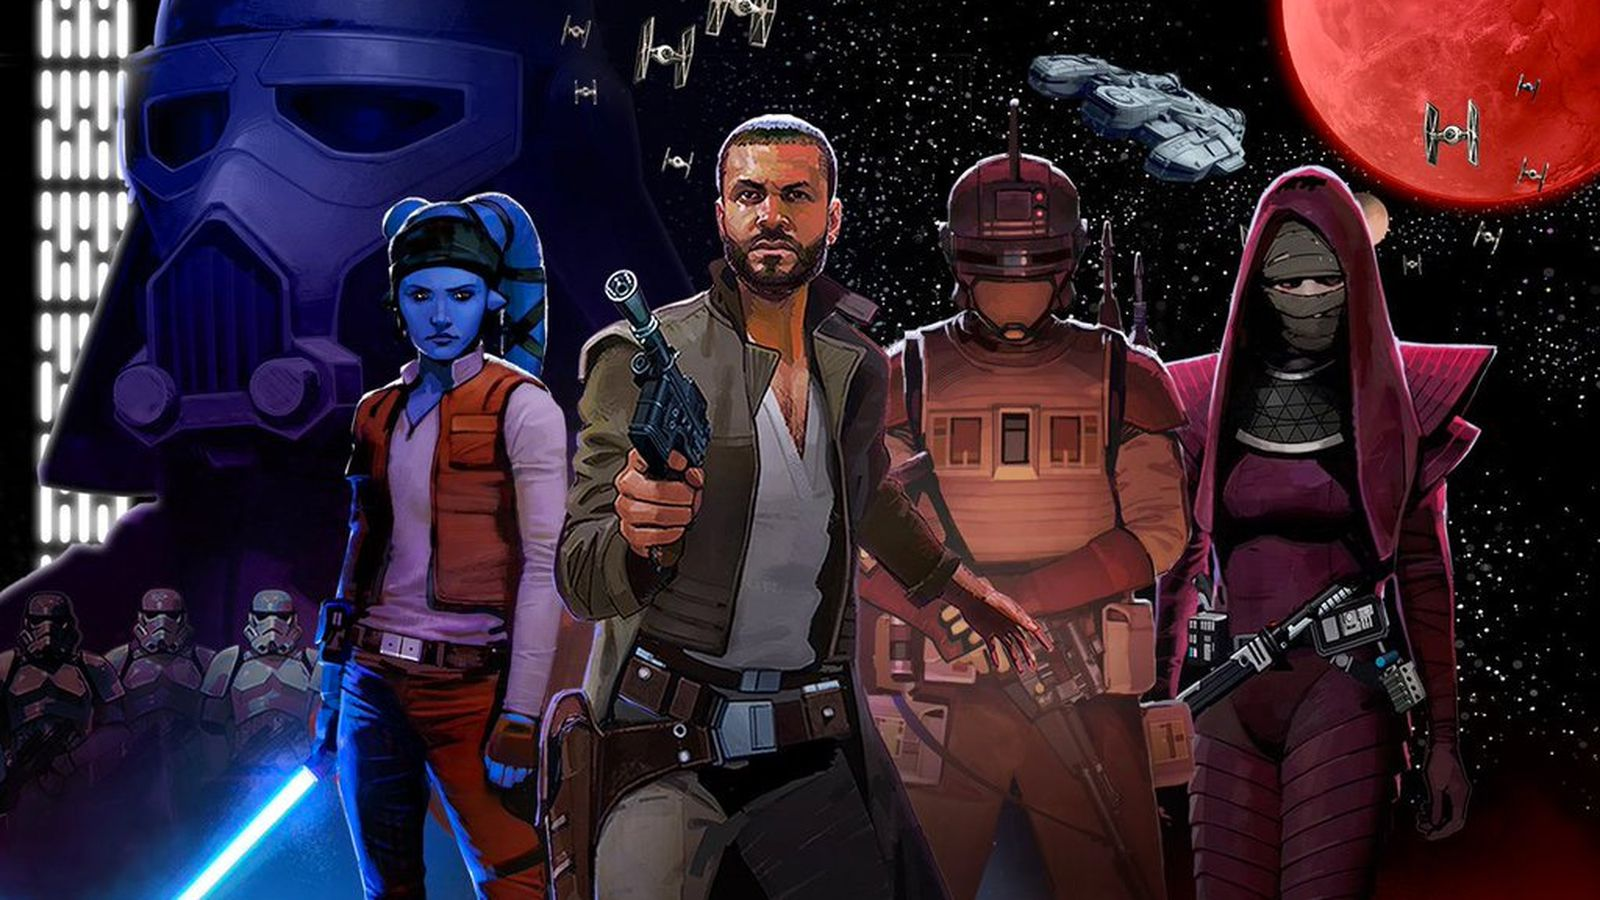 Download Star Wars Uprising on PC with BlueStacks